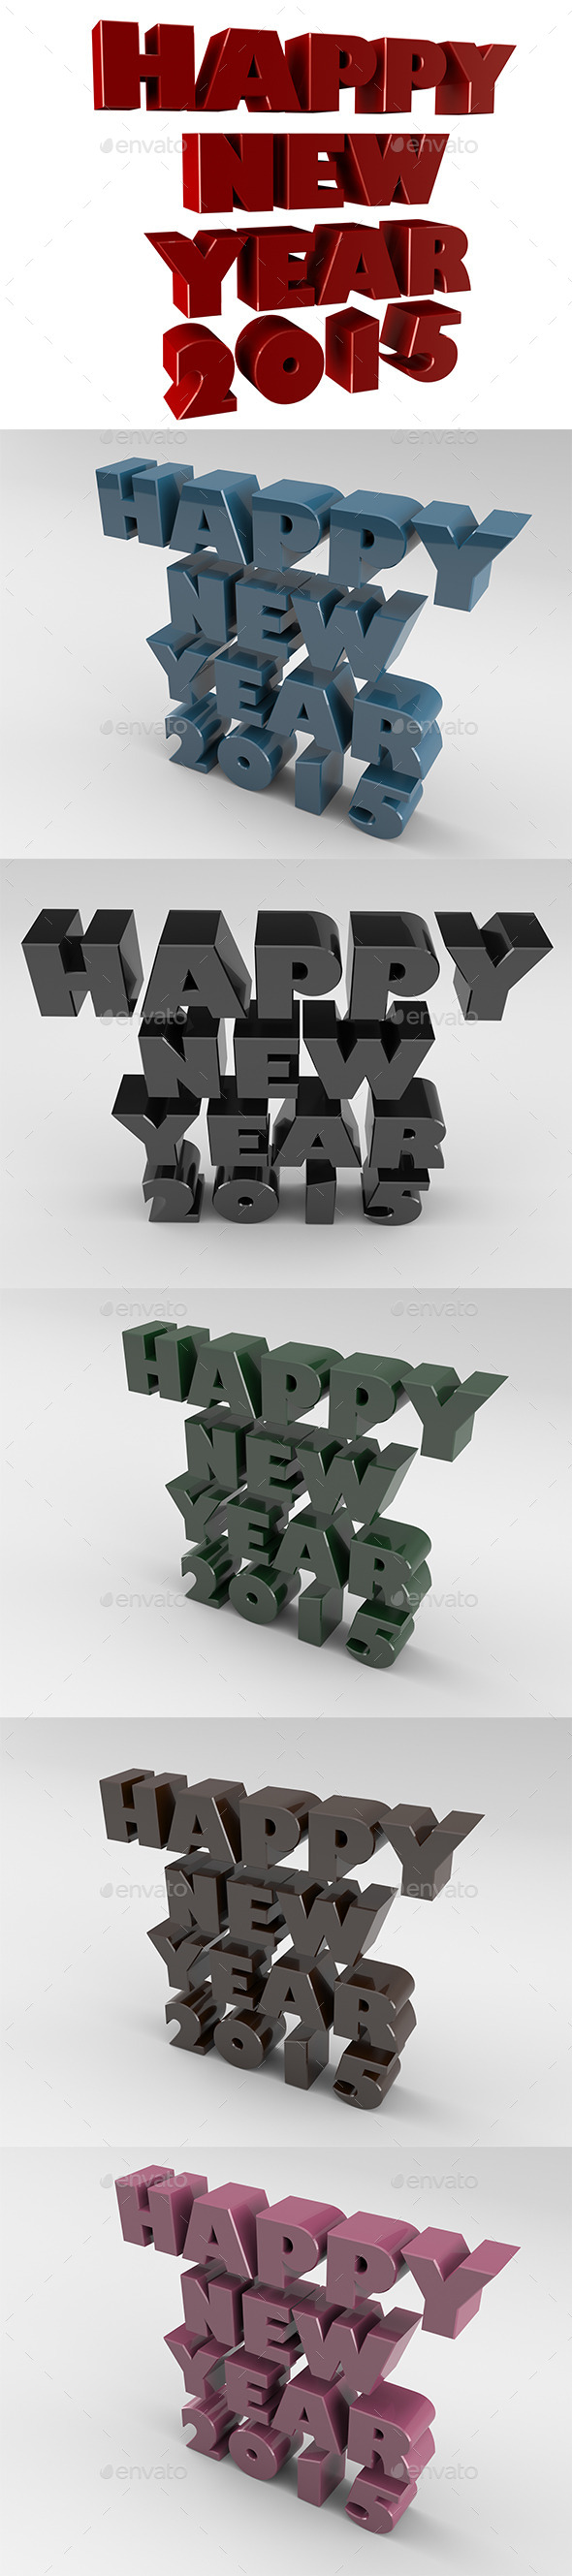 GraphicRiver Happy New Year 2015 9221238